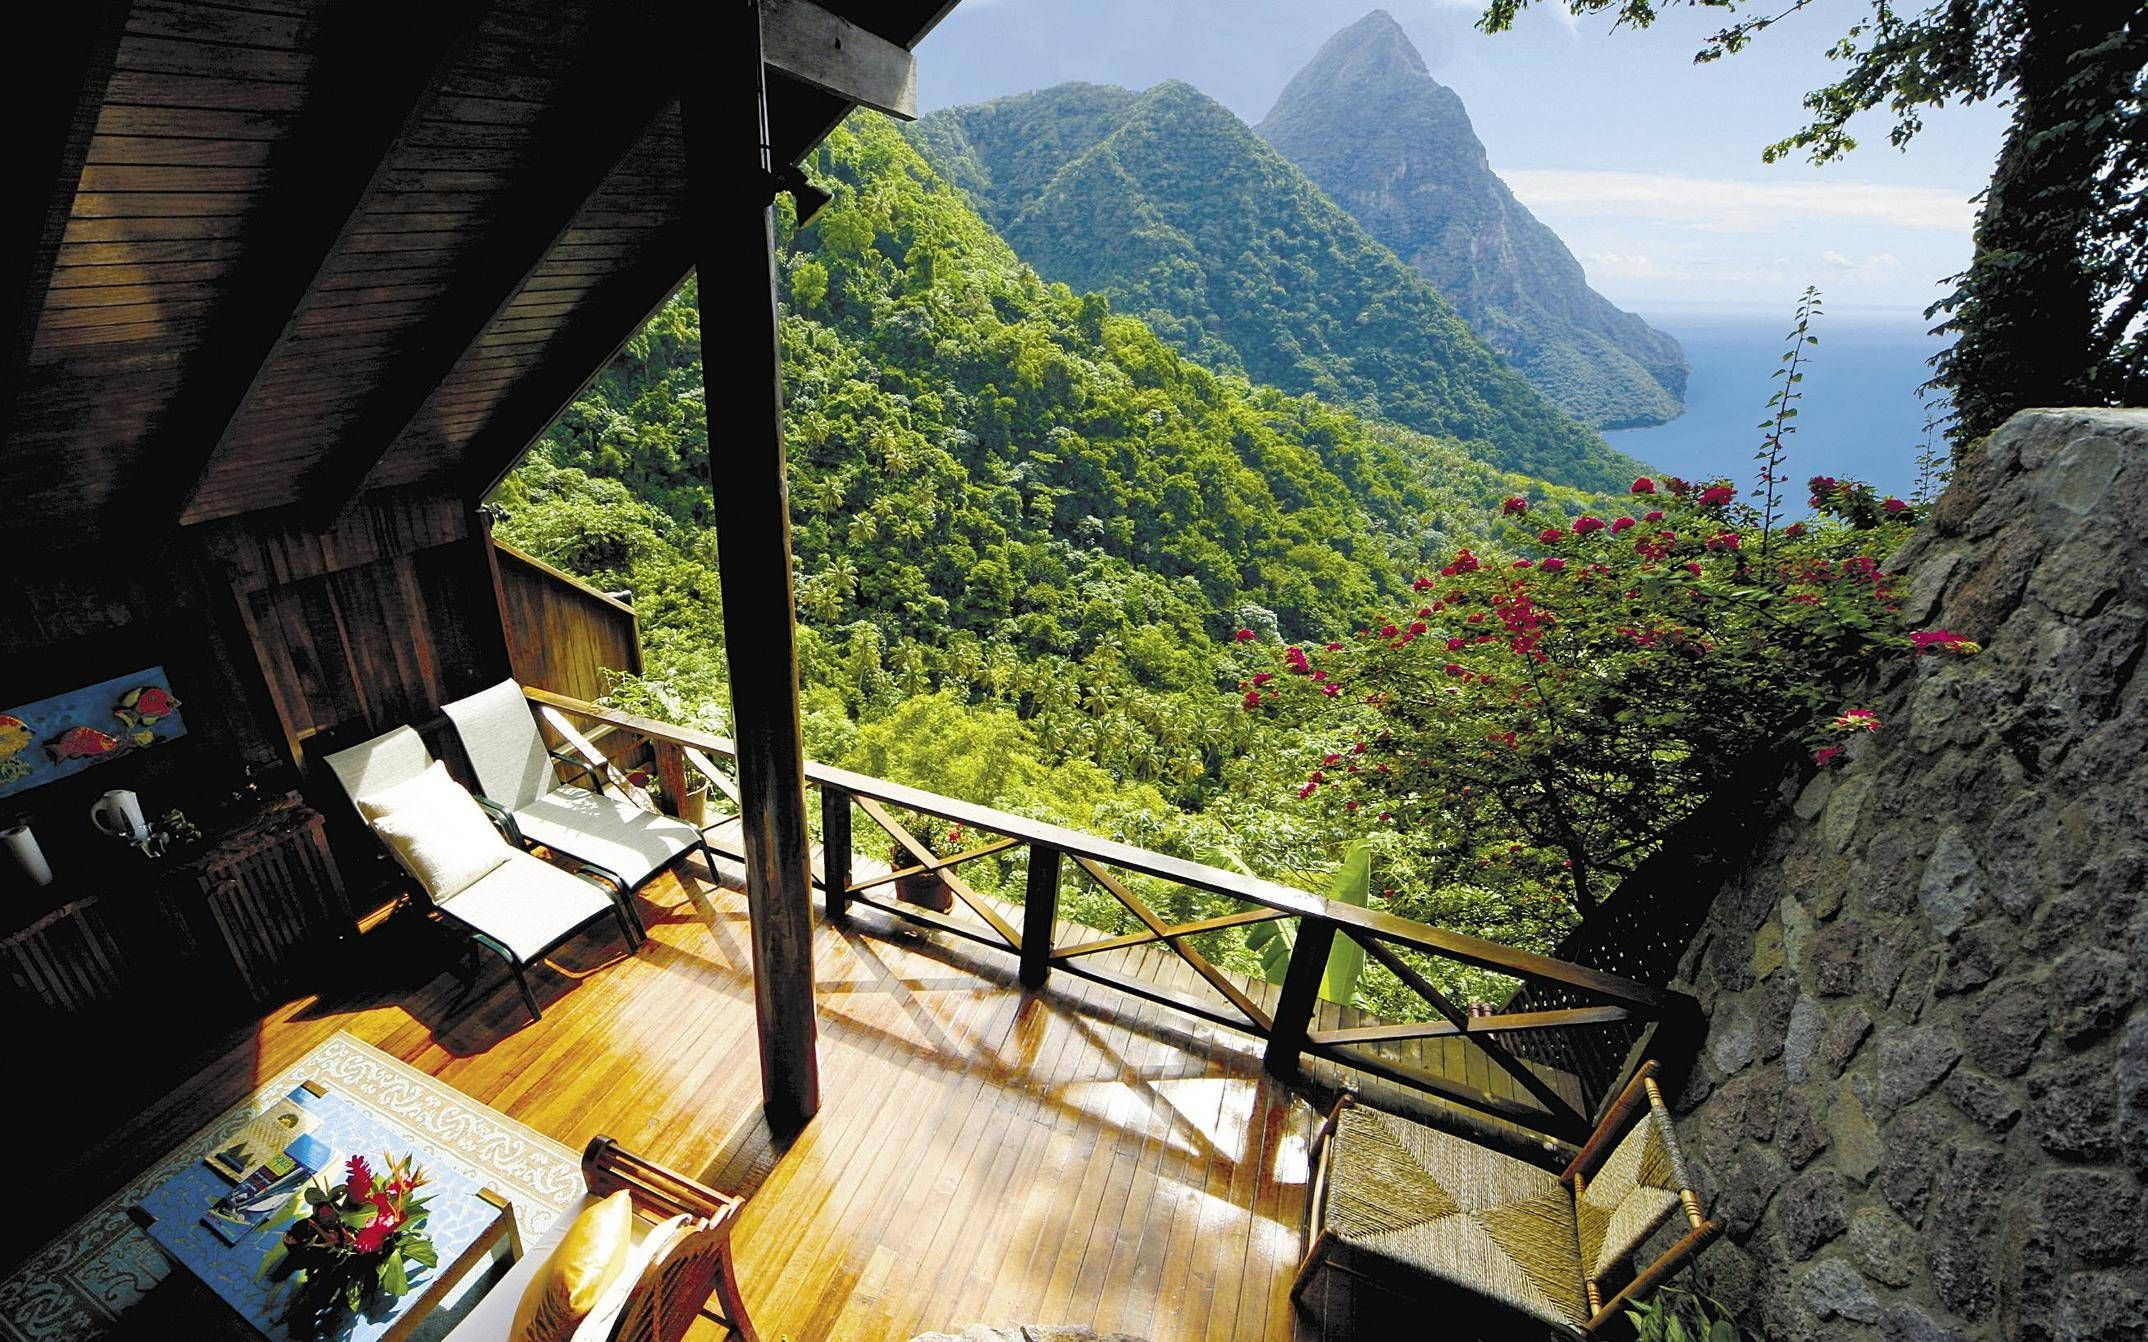 I don't know where this is, but I want to live there. Just right on that balcony for the rest of forever.